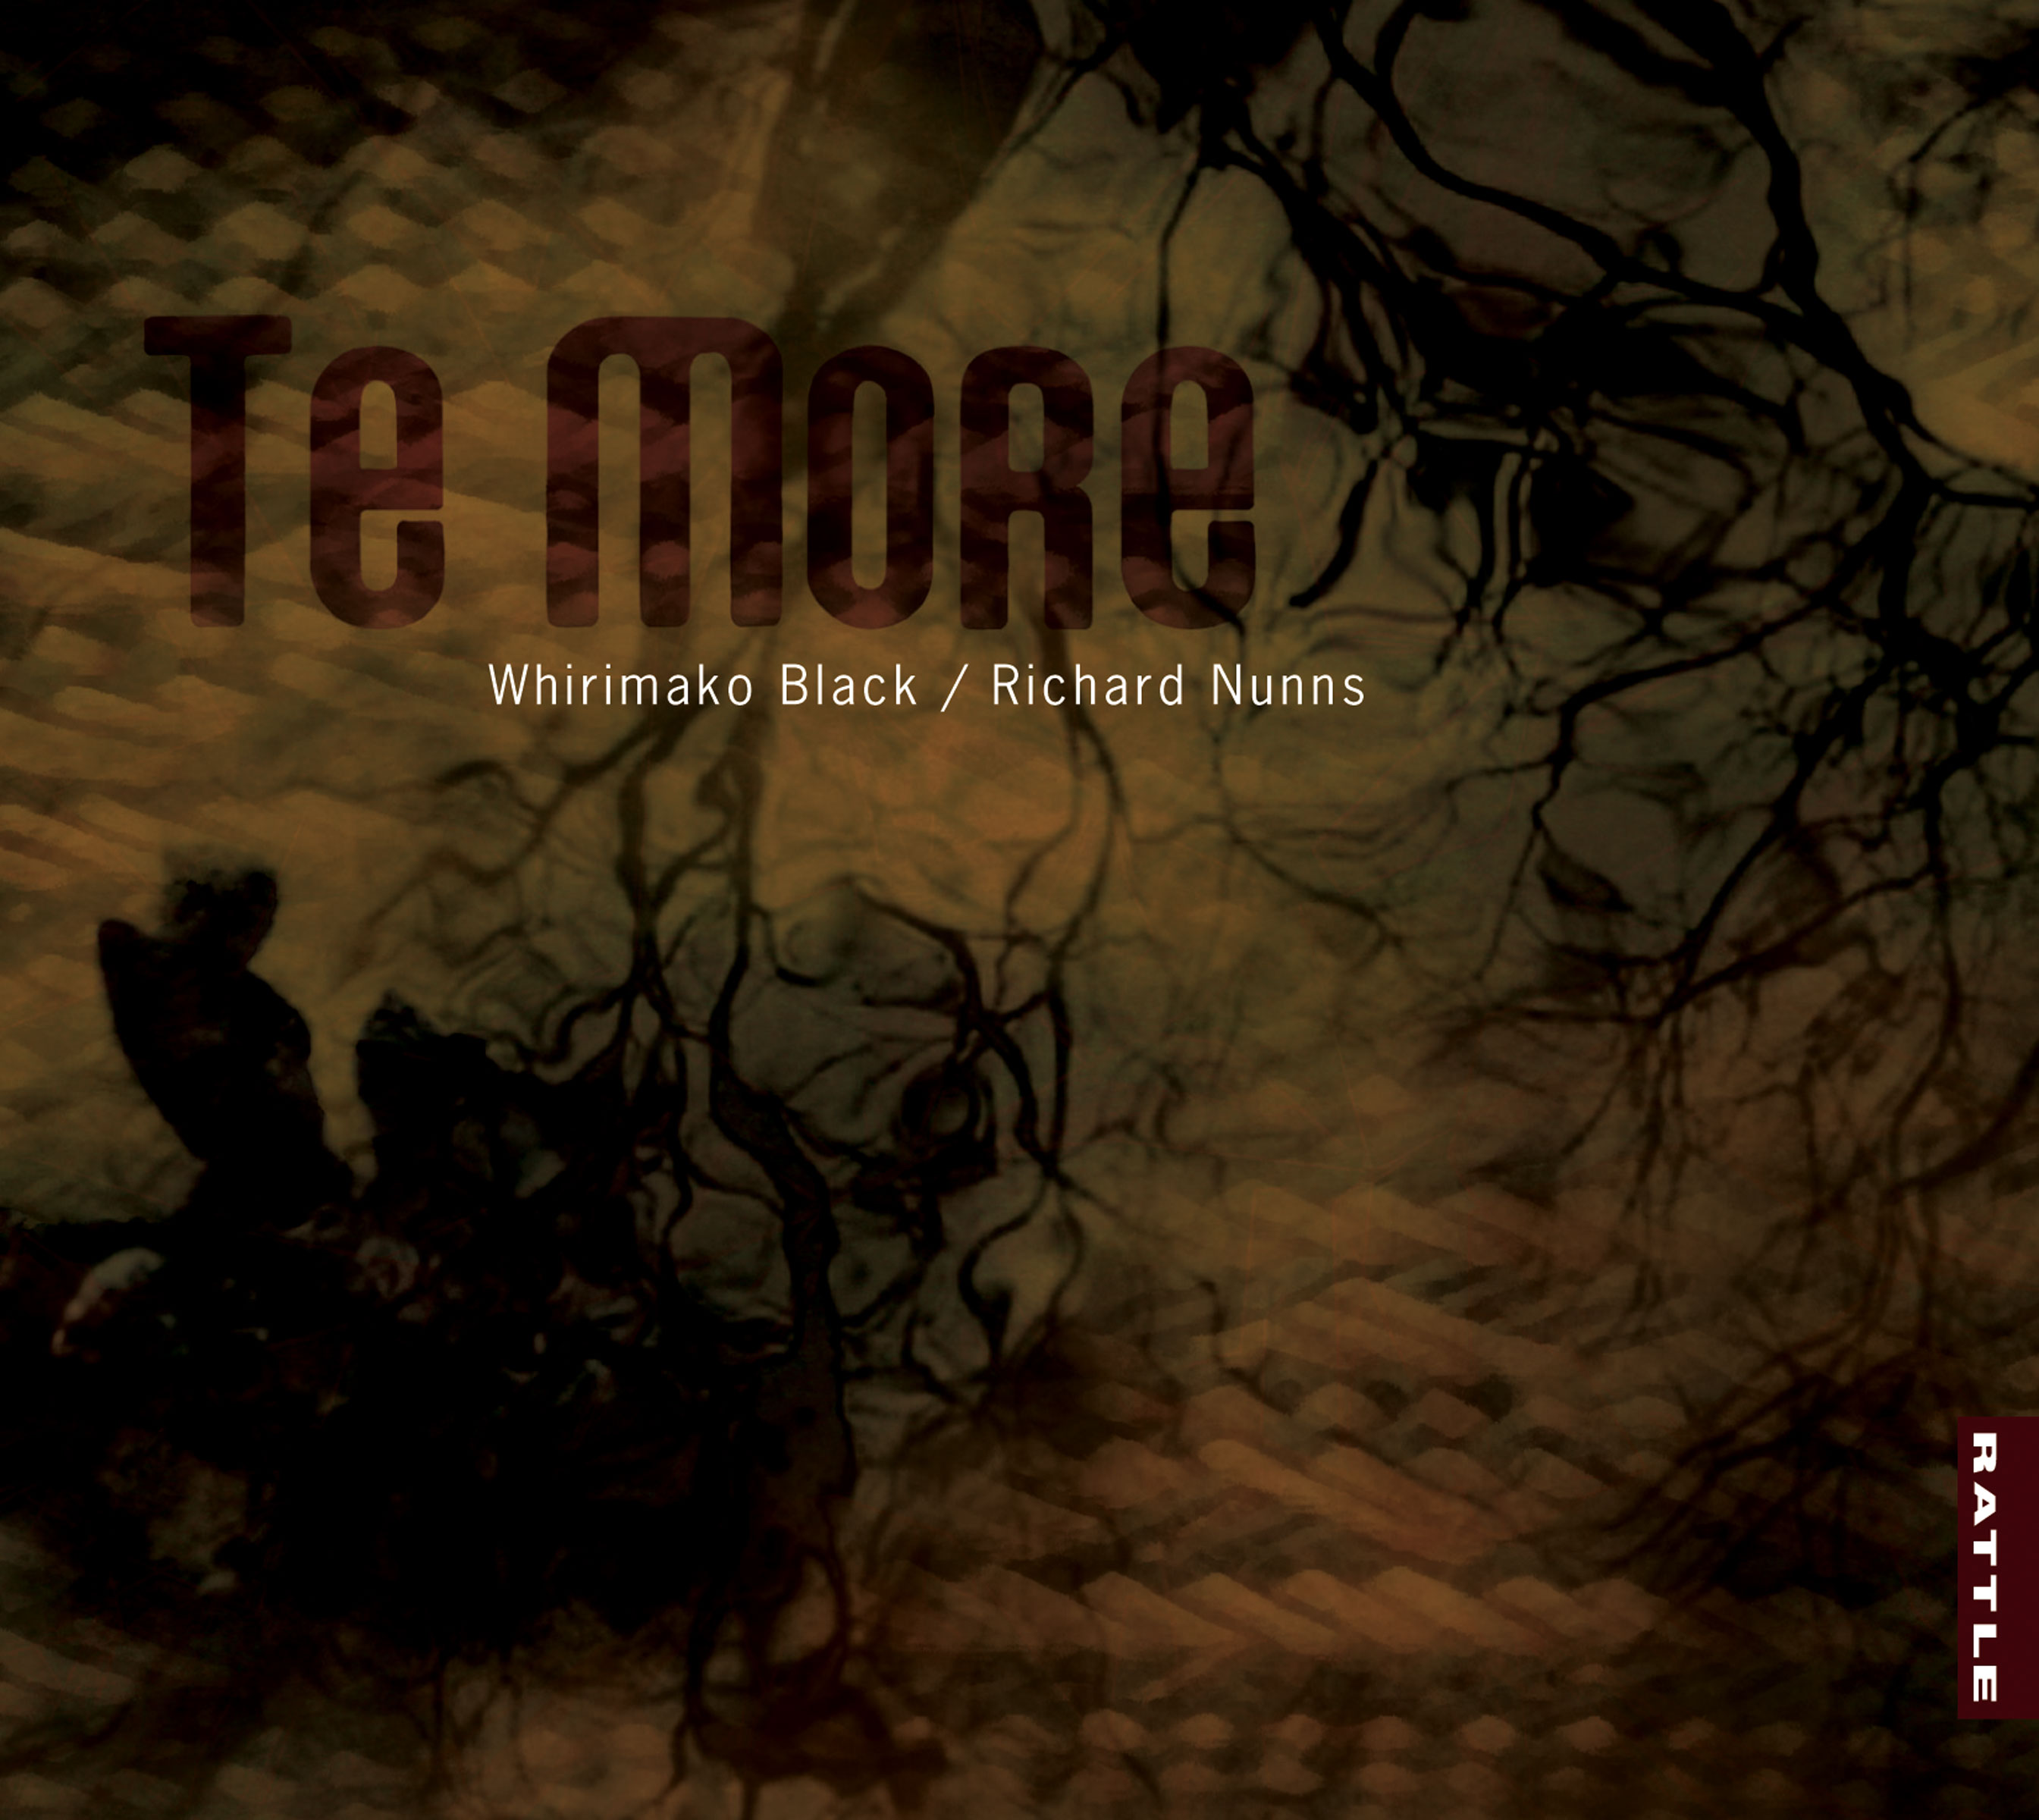 Whirimako Black and Richard Nunns | Te More - downloadable MP3 ALBUM